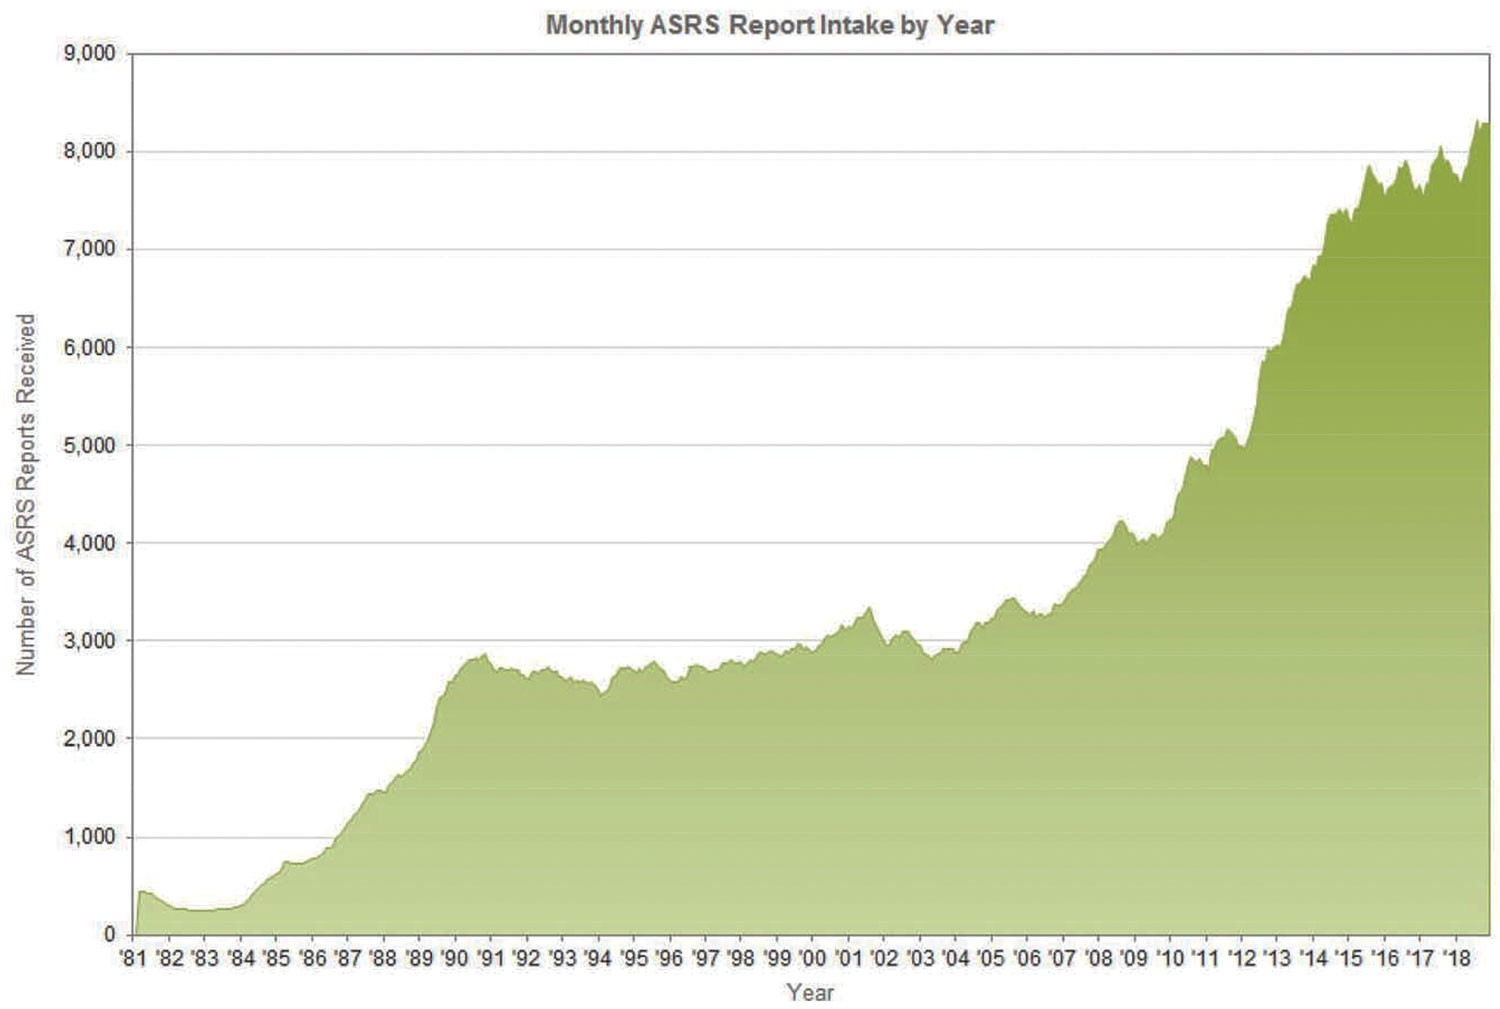 Chart—Monthly ASRS Reports Intake By Year